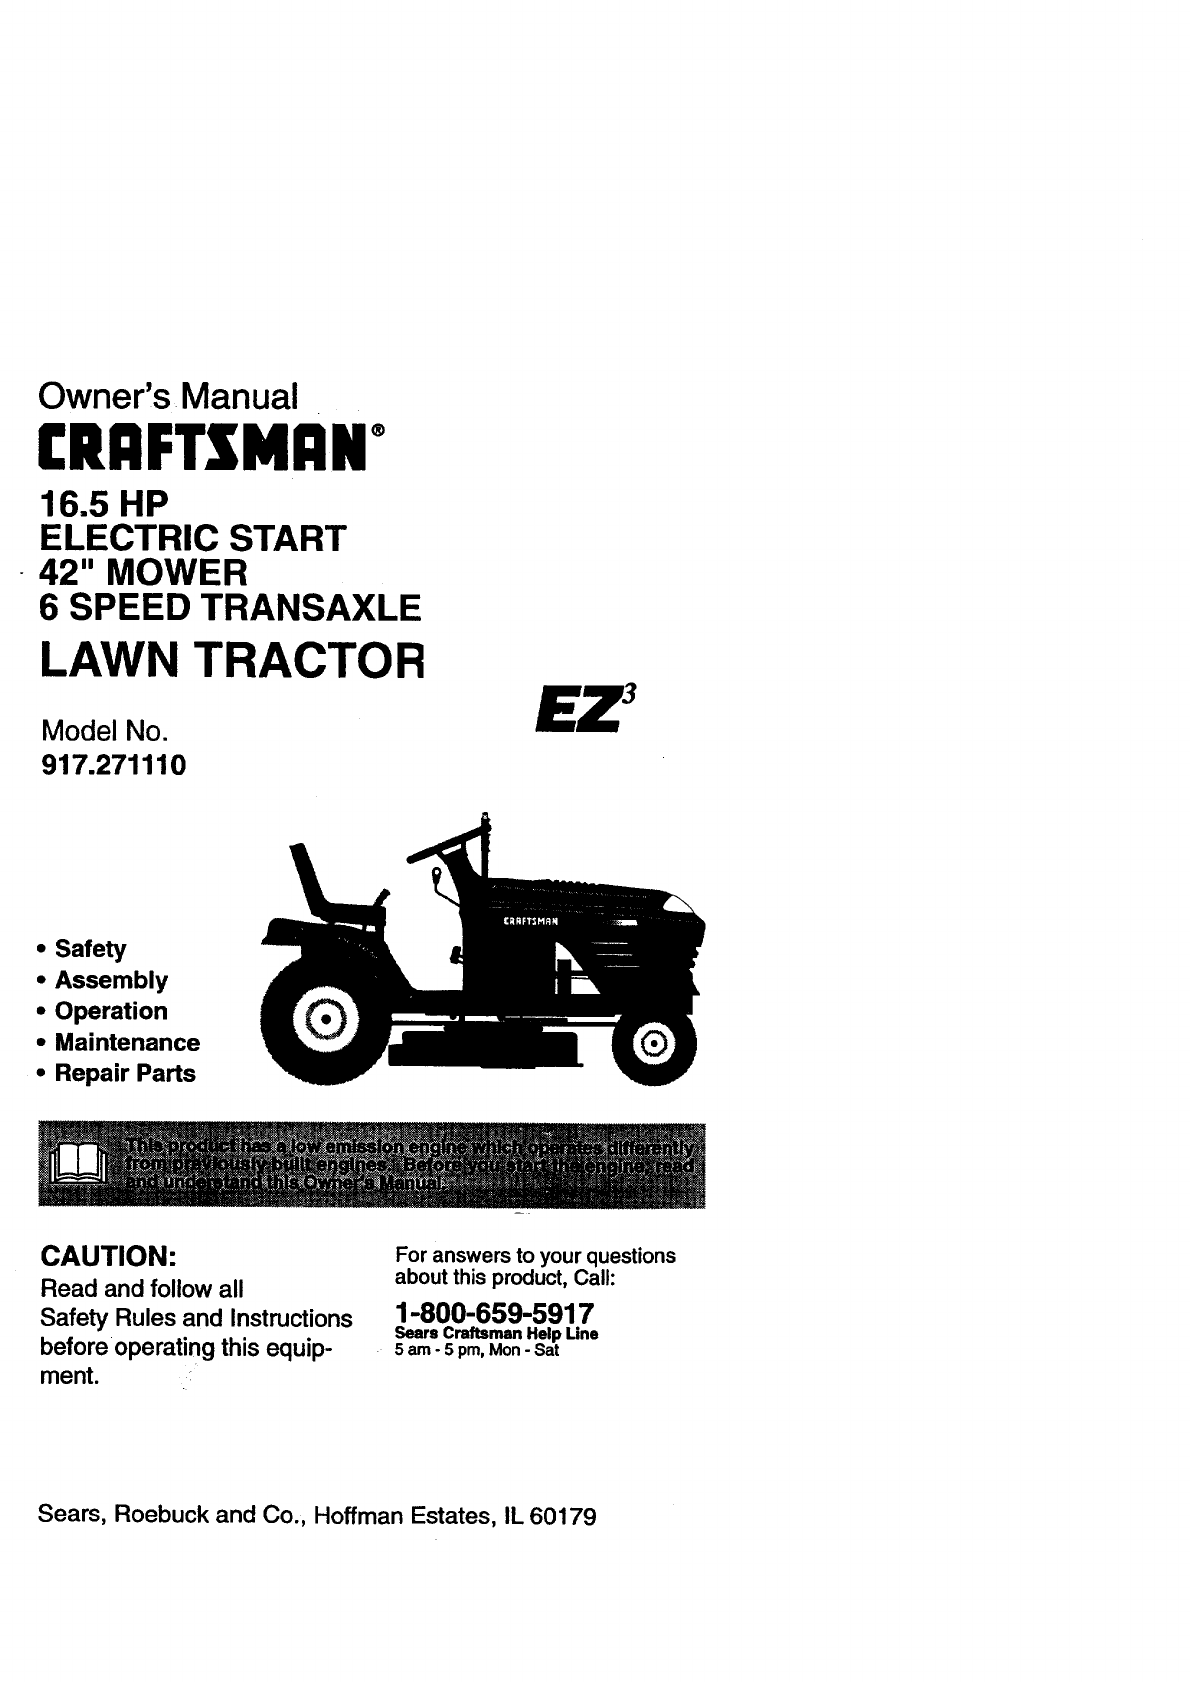 7a737f57 67af 49c5 a541 079cbf11b29b bg1 craftsman lawn mower 917 271110 user guide manualsonline com craftsman riding lawn mower lt1000 wiring diagram at gsmx.co